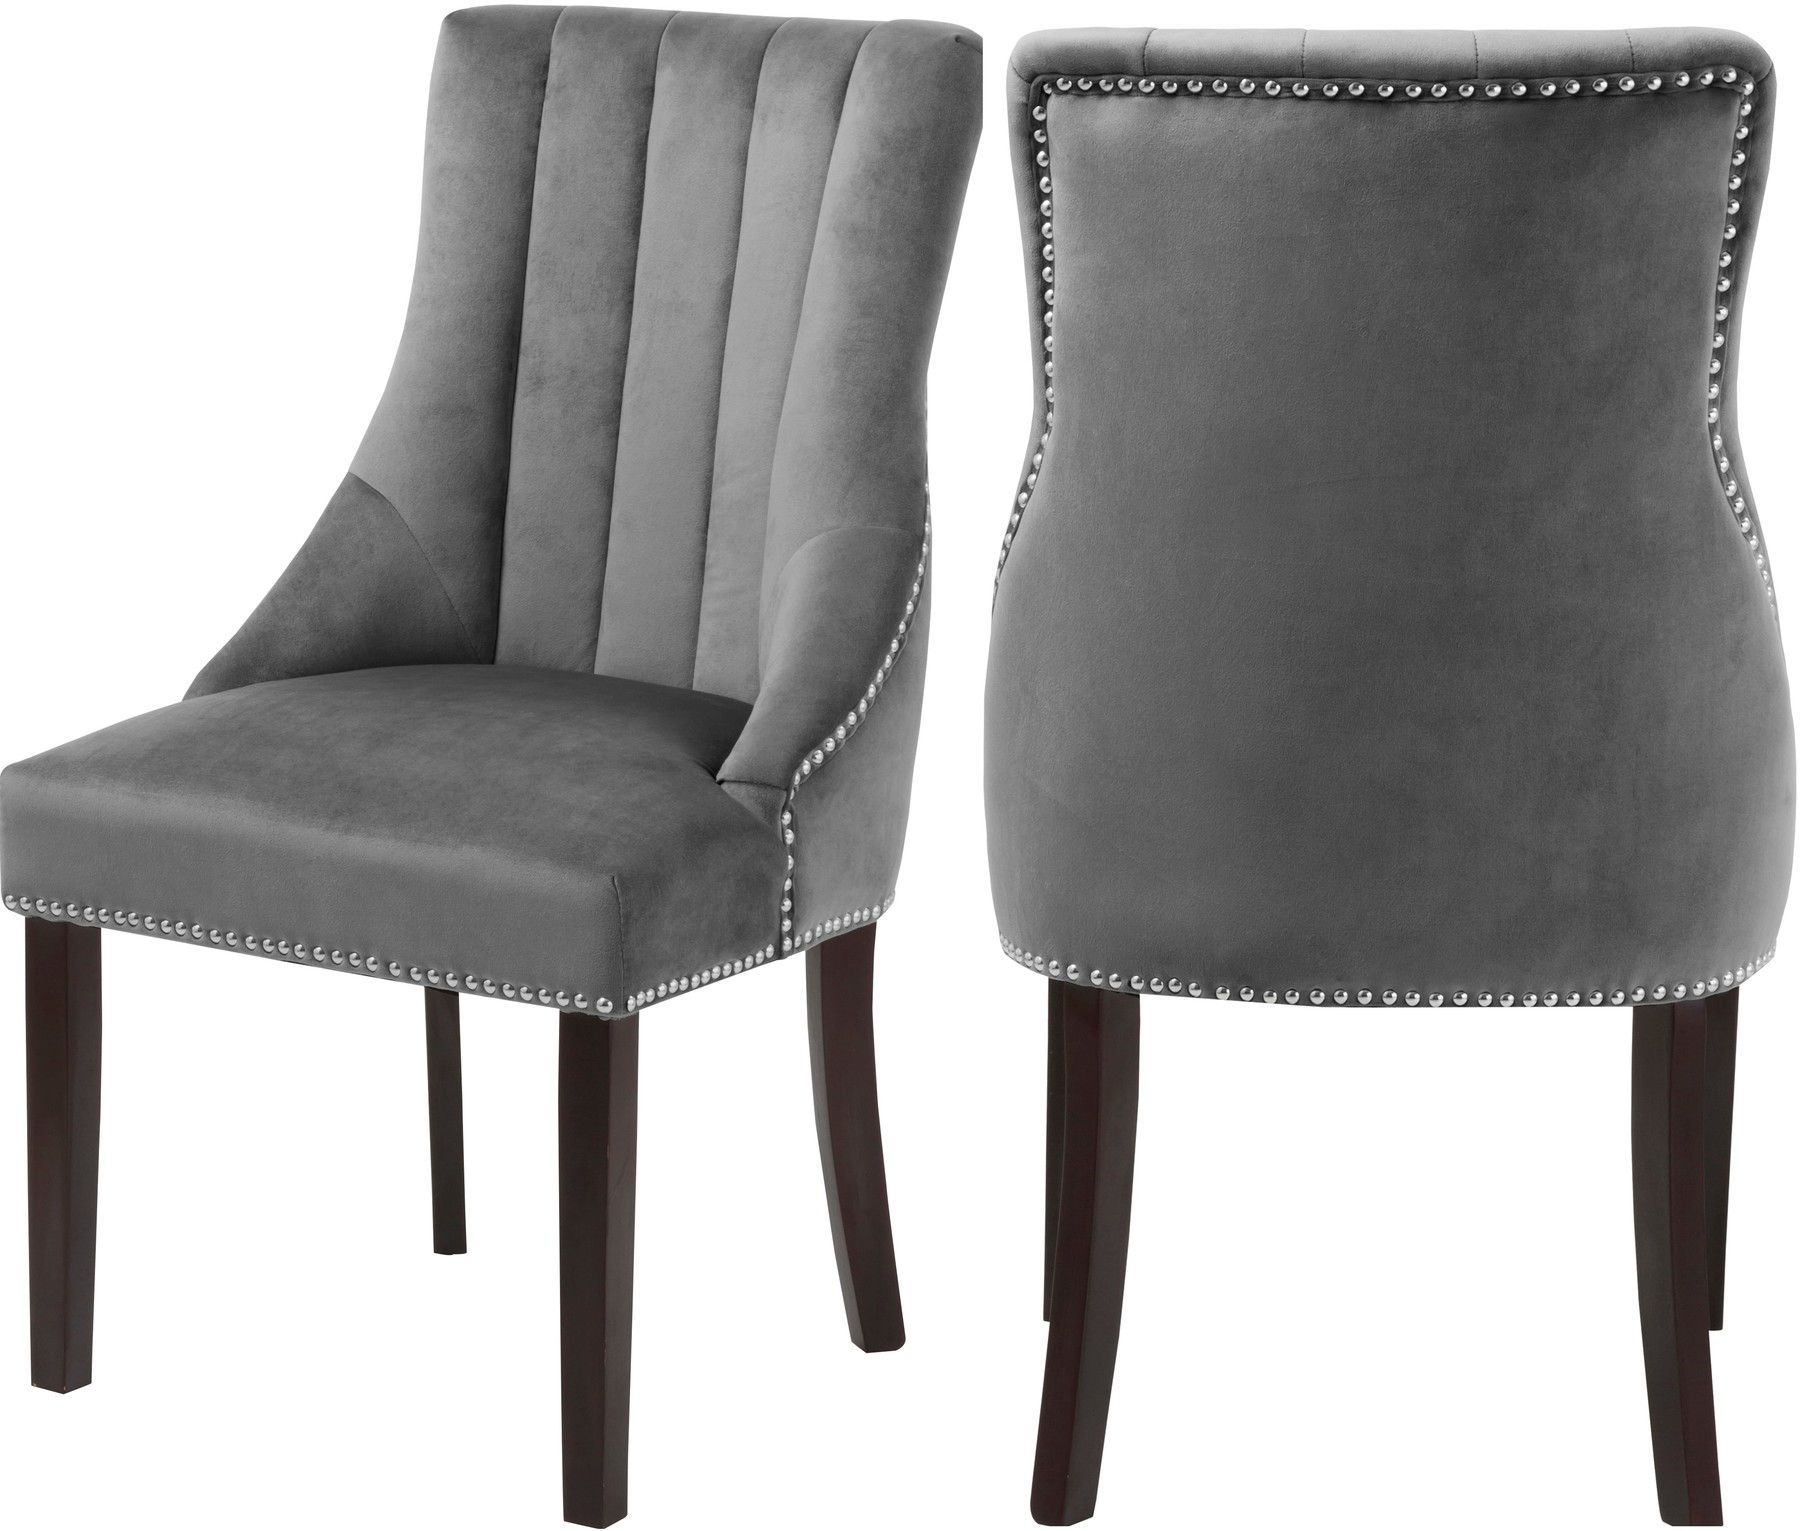 2 X Oxford Gray Dining Chair In 2020 Dining Chairs Velvet